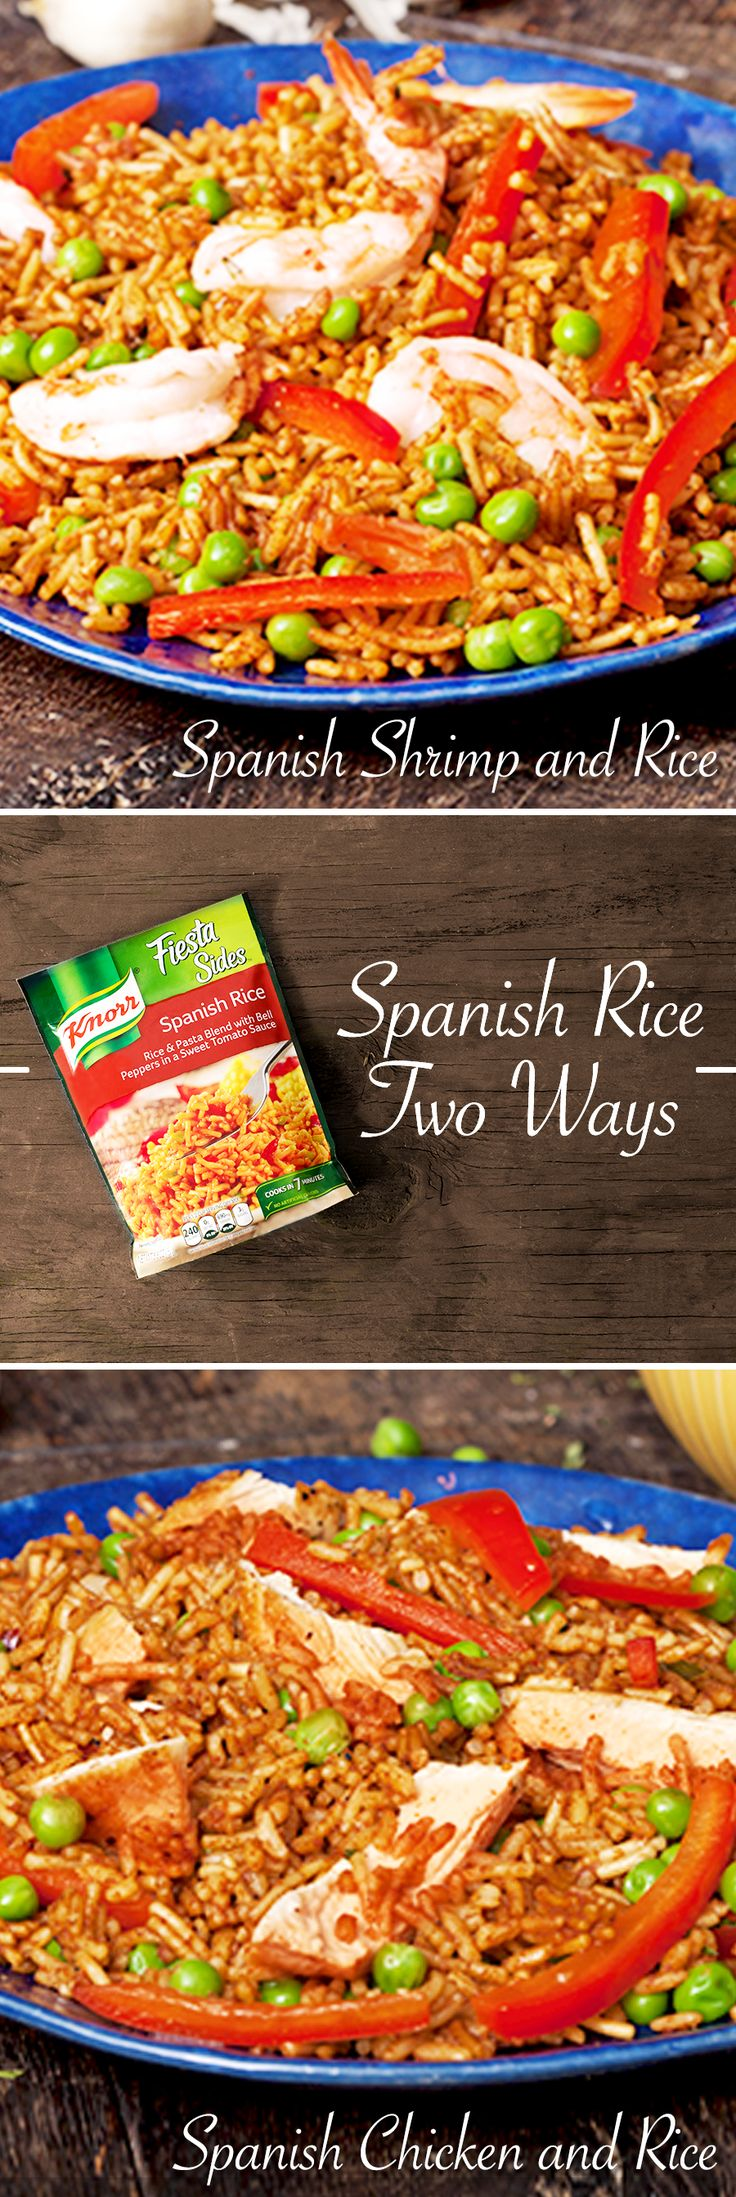 Whatever your style, it's easy to make a delicious Spanish Rice meal right on the stovetop. Just pick your protein, and delicious flavors will follow!